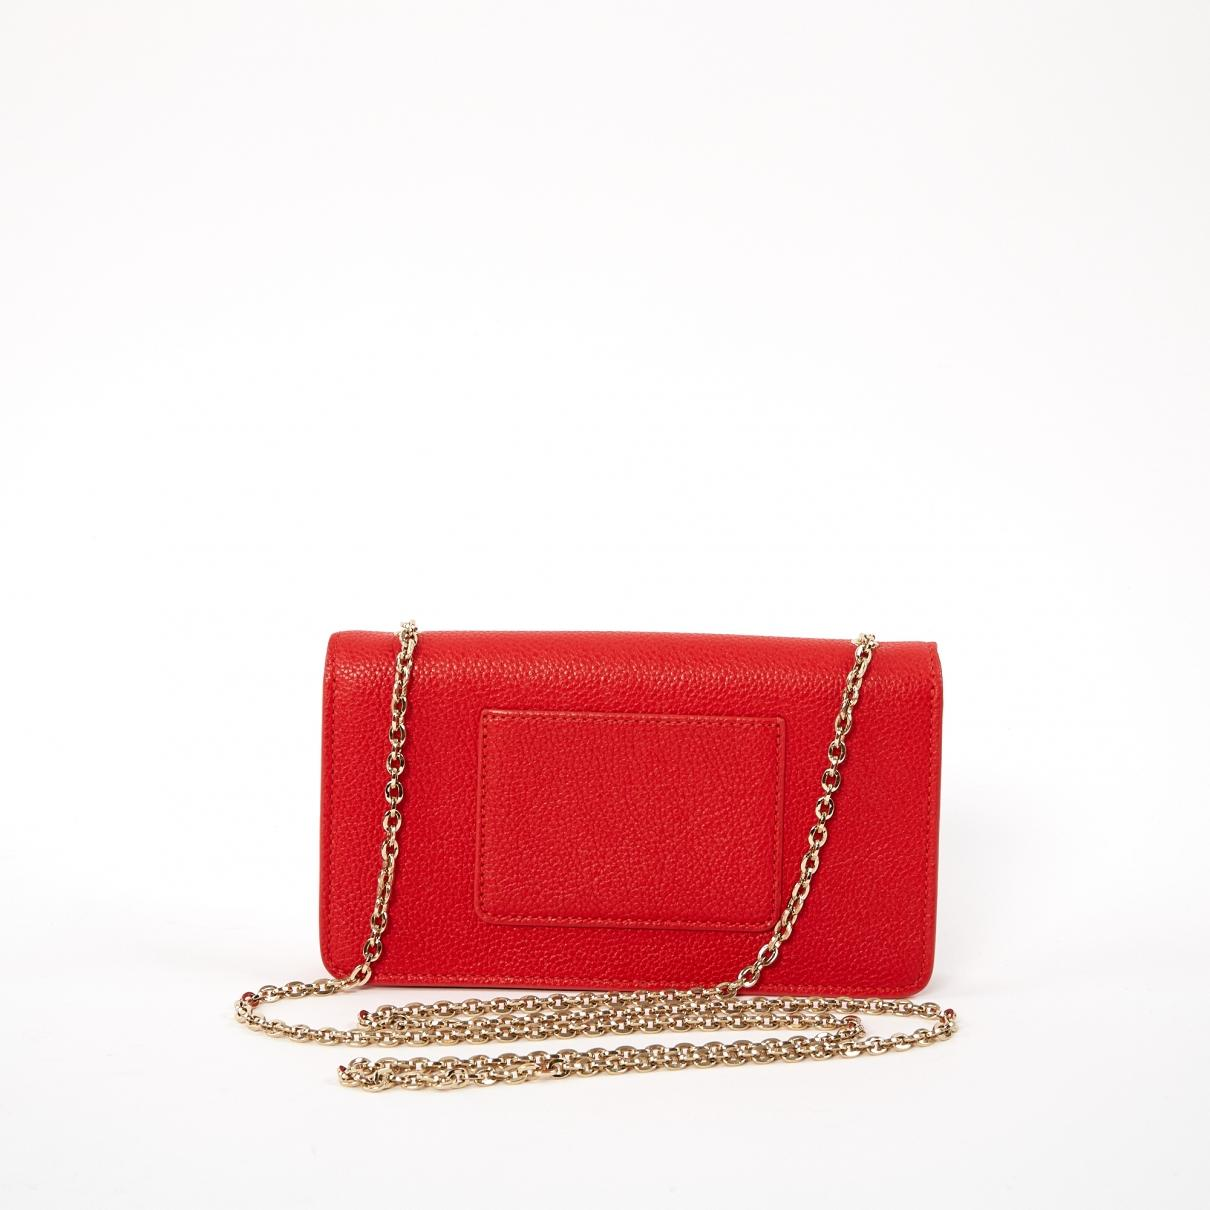 Mulberry - Red Leather Clutch Bag - Lyst. View fullscreen d9c3fca2bd344